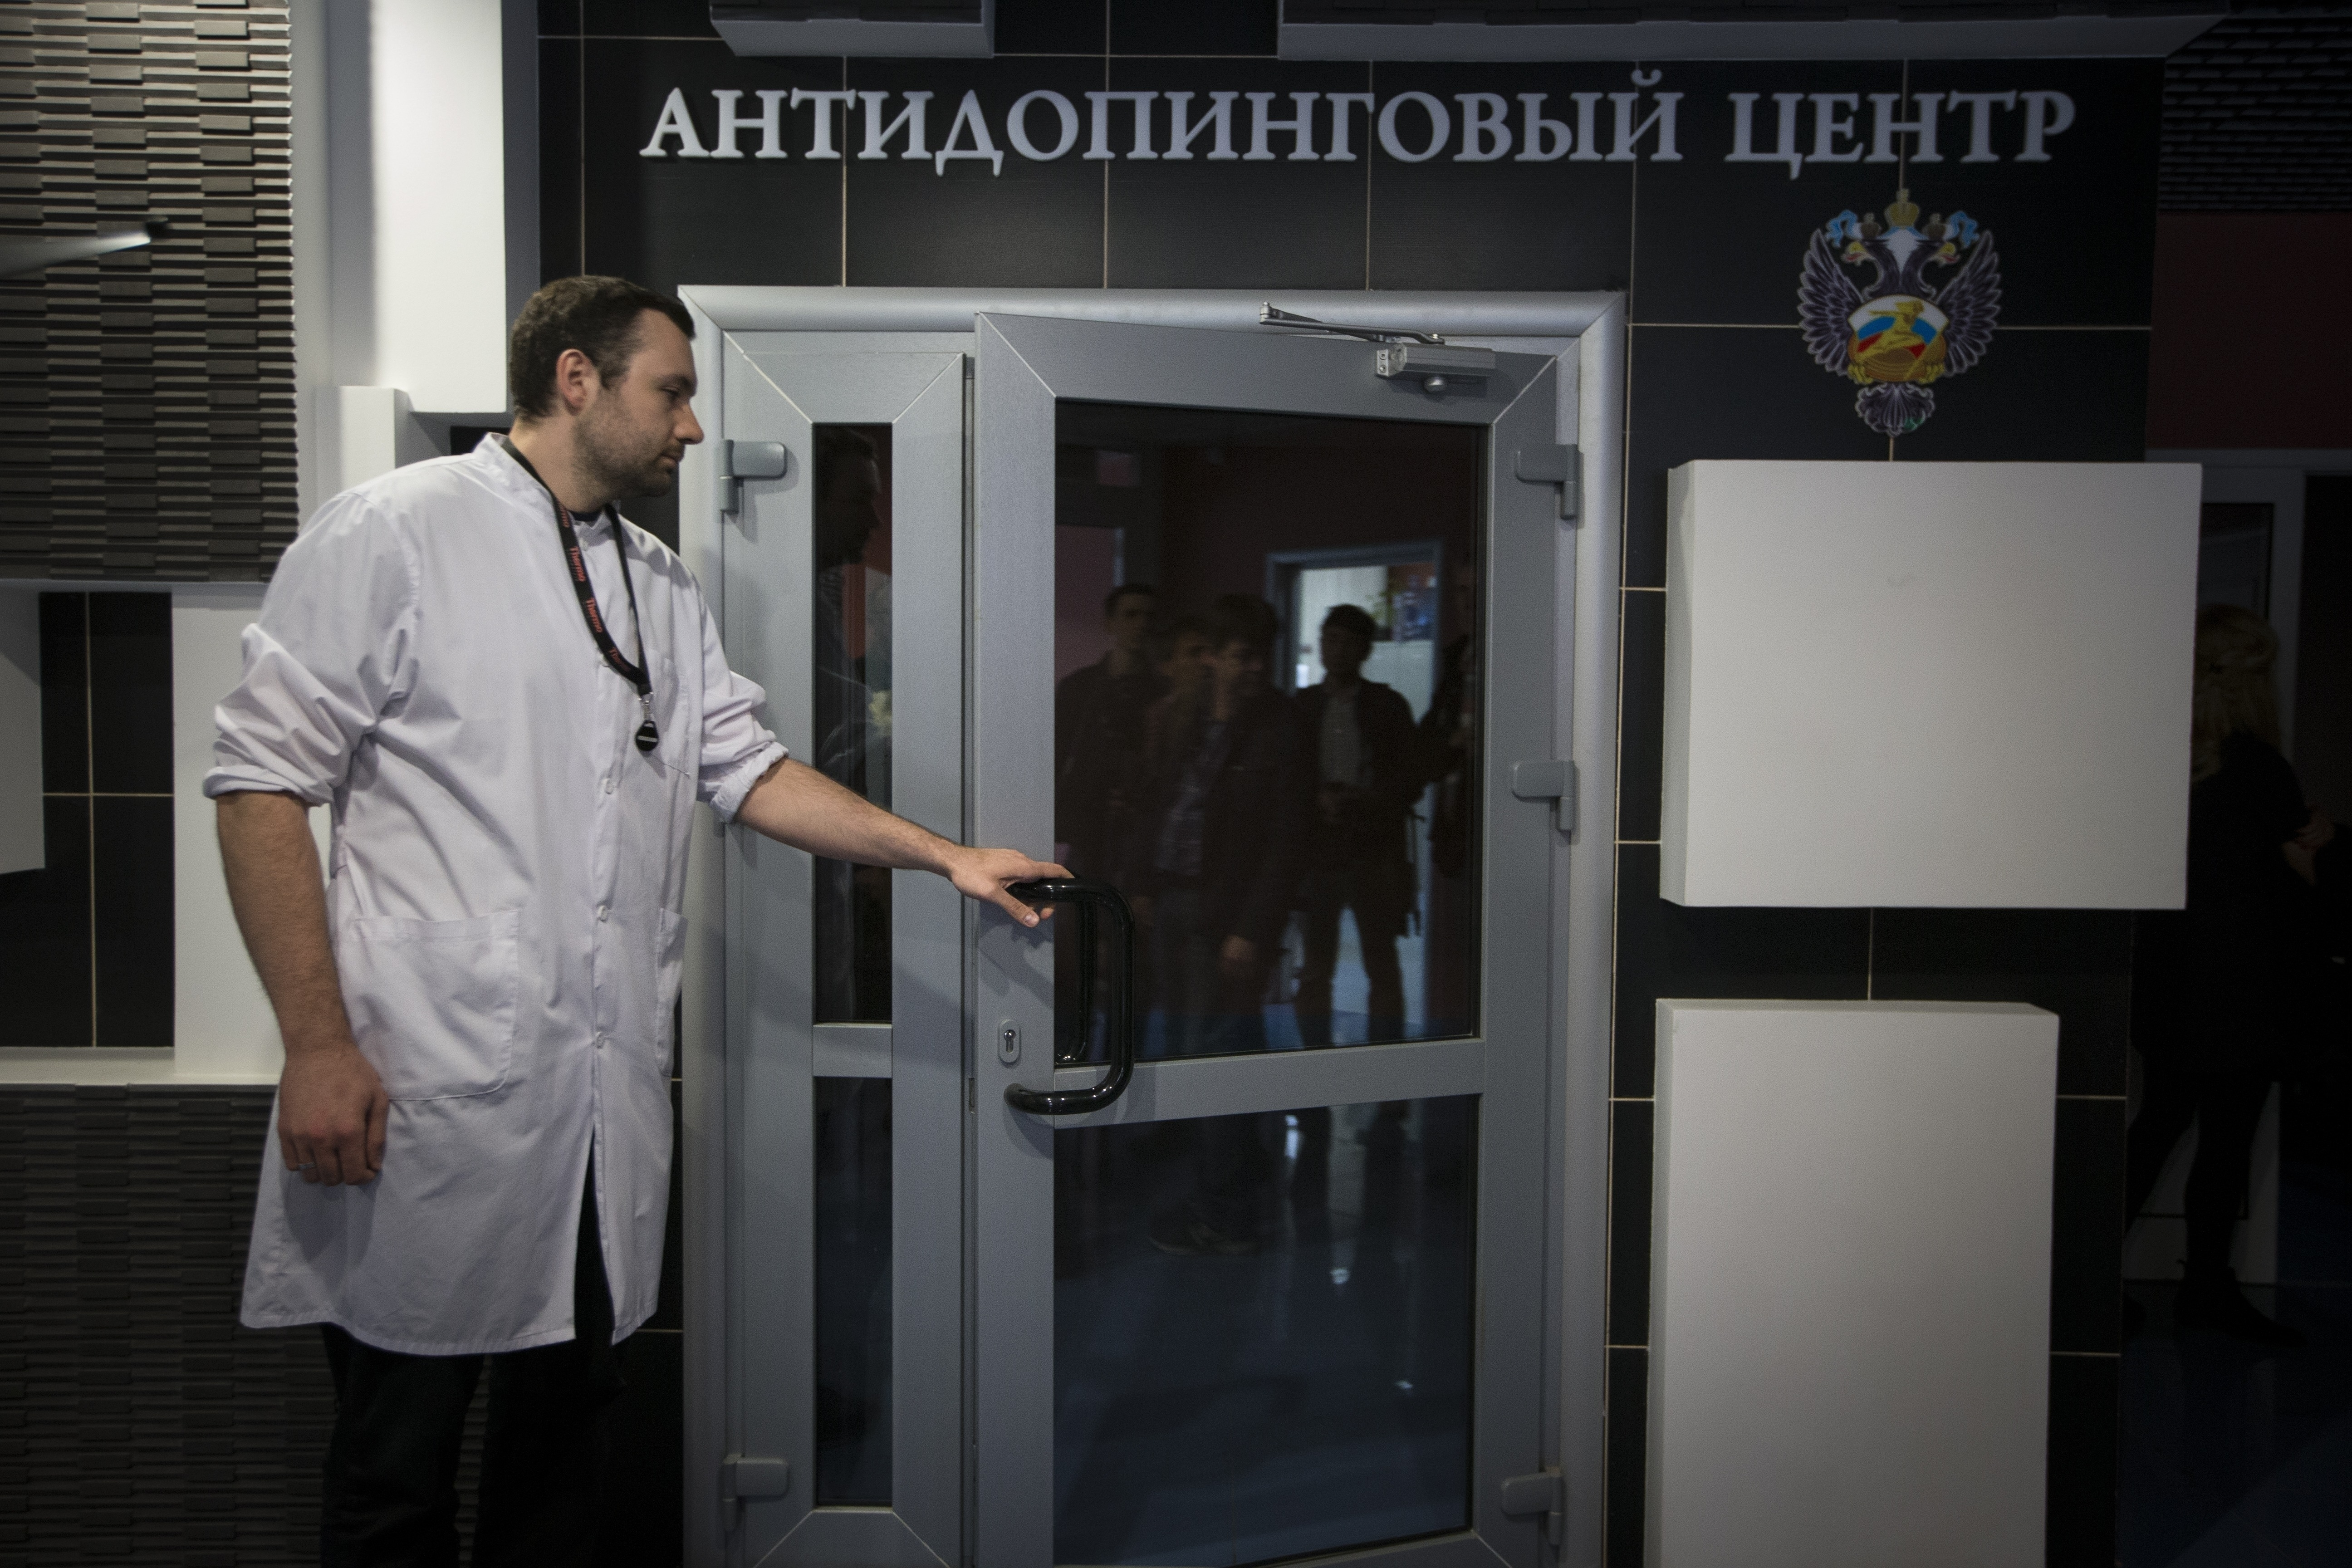 FILE - In this Tuesday, May 24, 2016 file photo, Grigory Dudko opens a door for journalists during a visit to Russia's national drug-testing laboratory in Moscow, Russia. Vladimir Putin's spokesman says Russia is